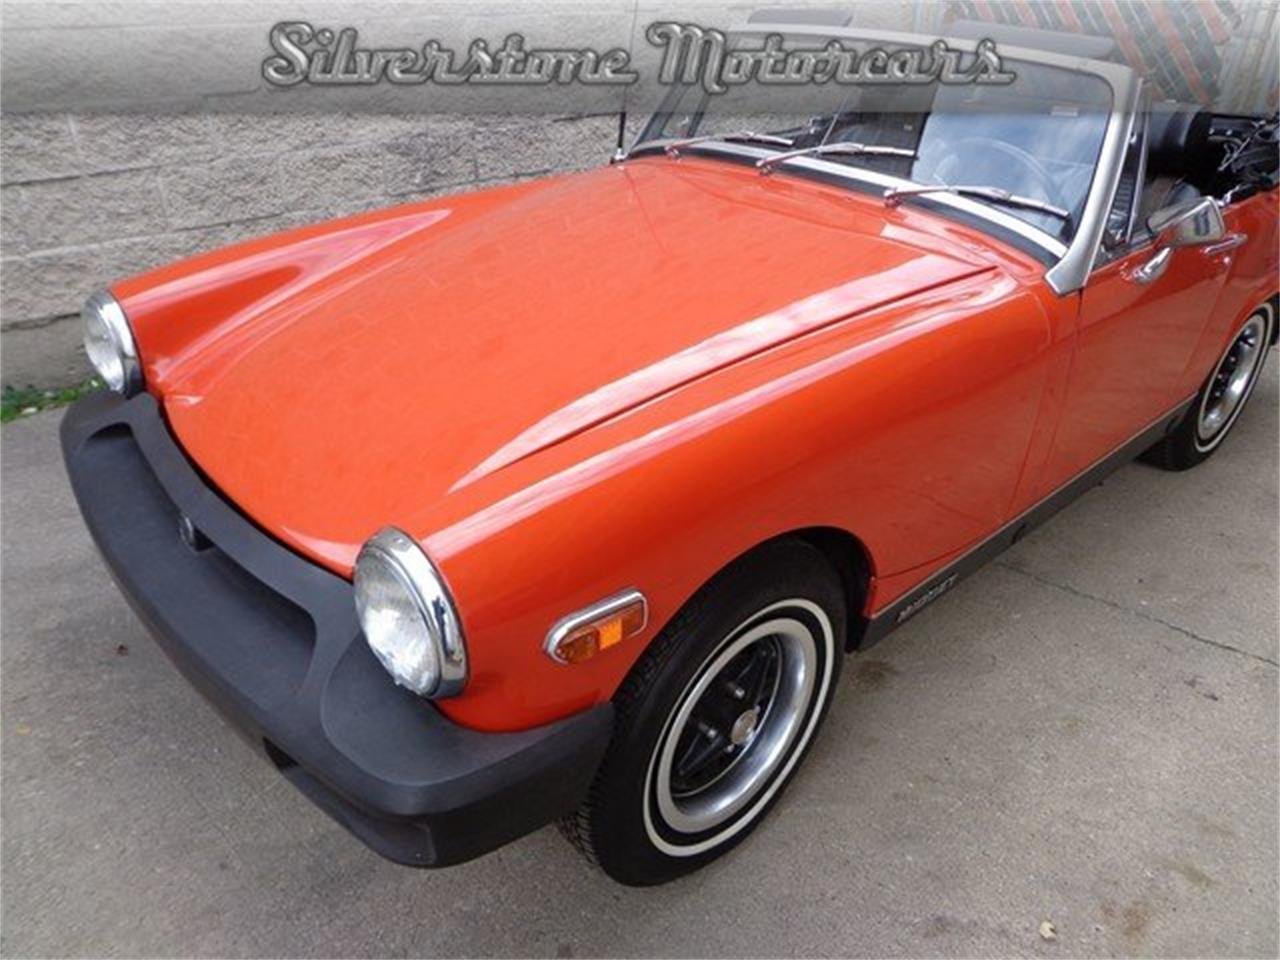 Large Picture of 1976 MG Midget located in North Andover Massachusetts - $7,500.00 - F8K7